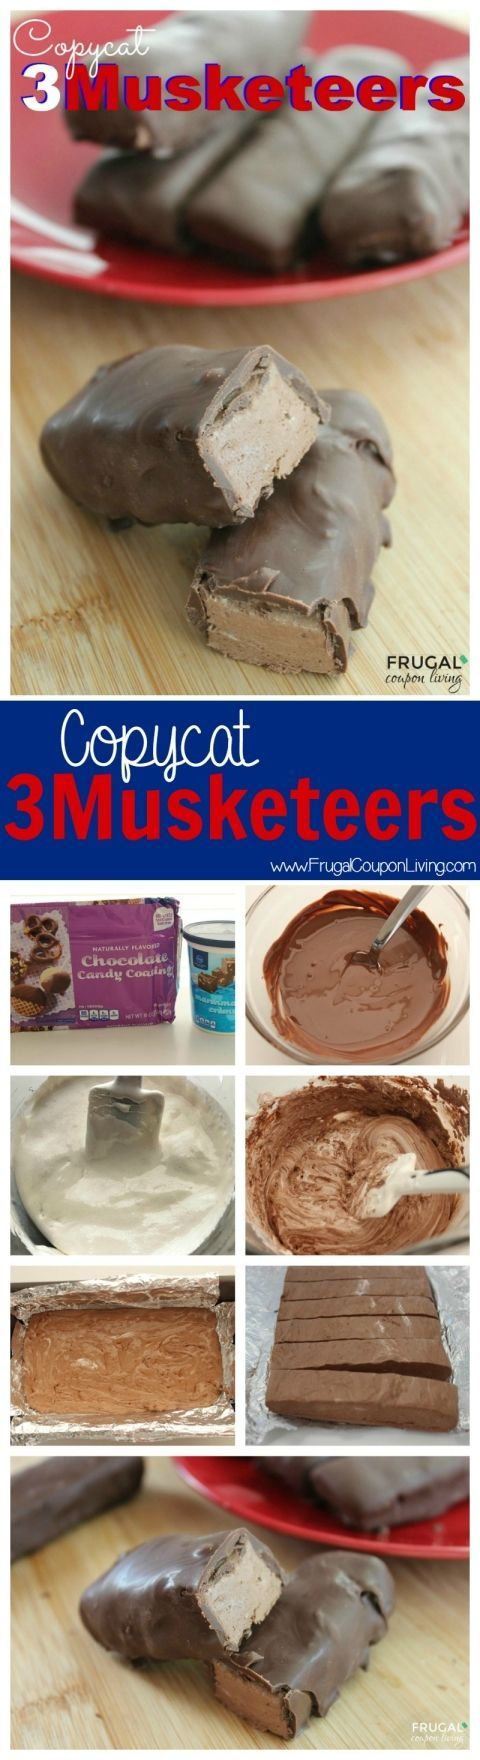 copycat-3-musketeers-Collage-frugal-coupon-living